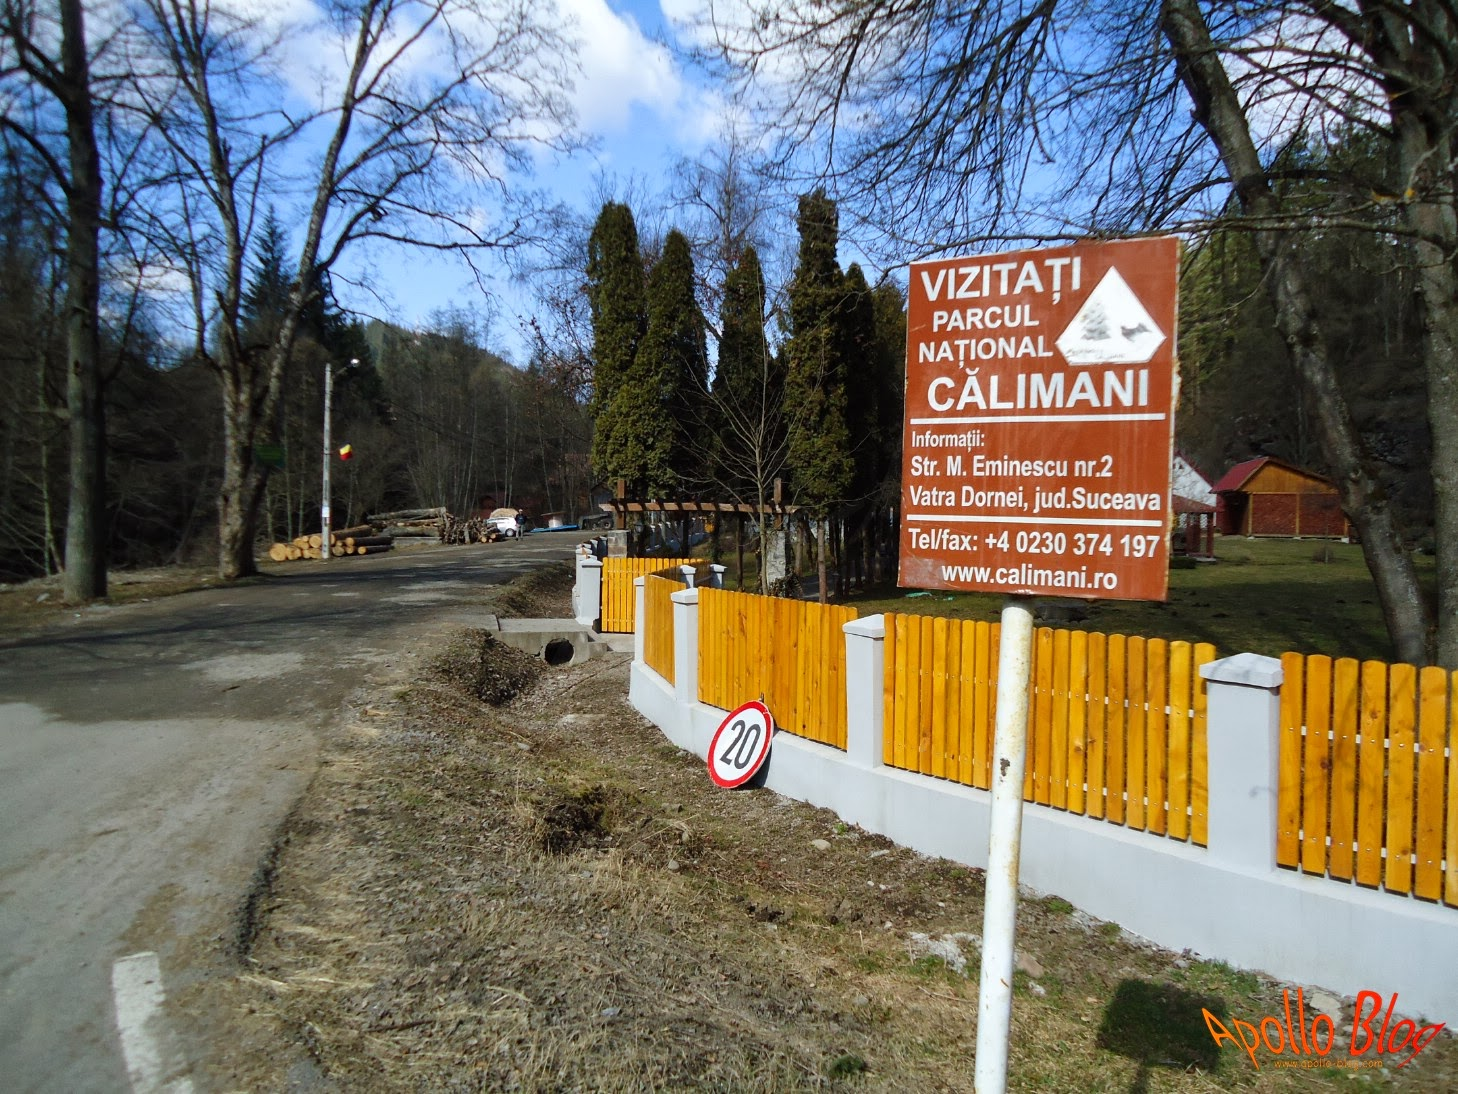 Parcul National Calimani